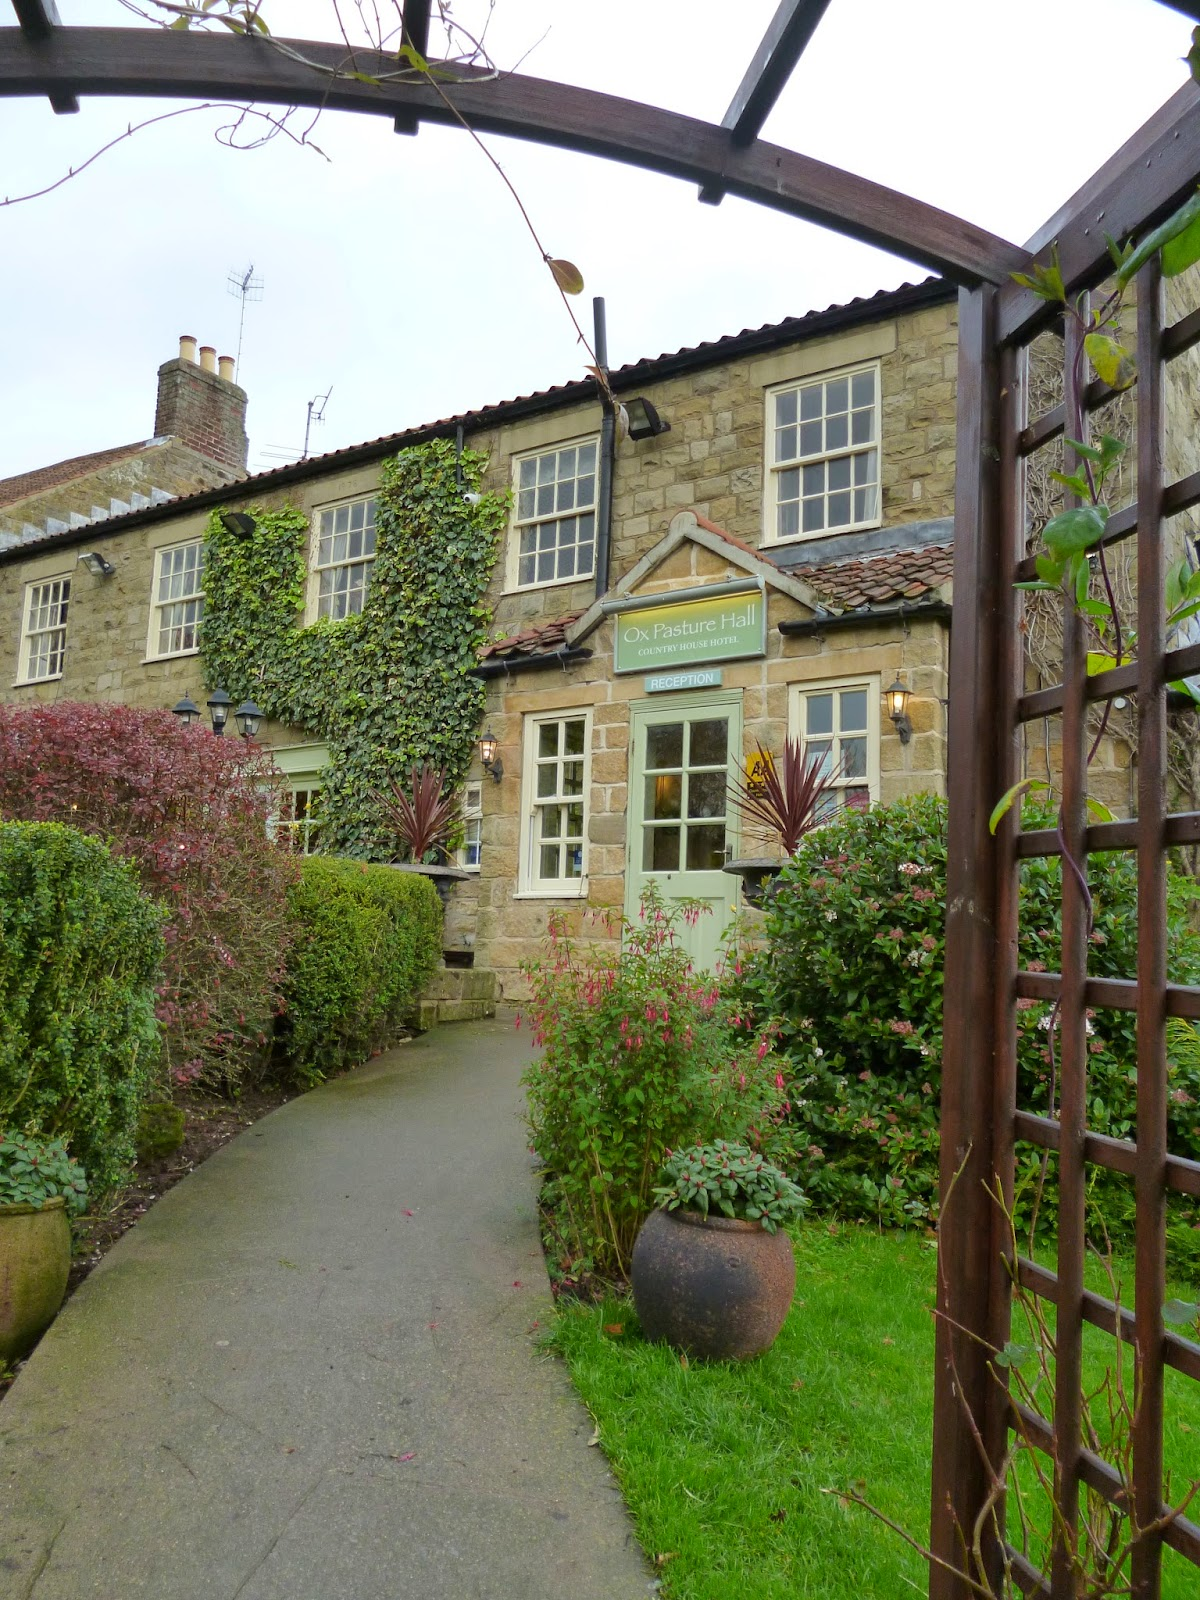 Ox Pasture Hall Hotel, Yorkshire